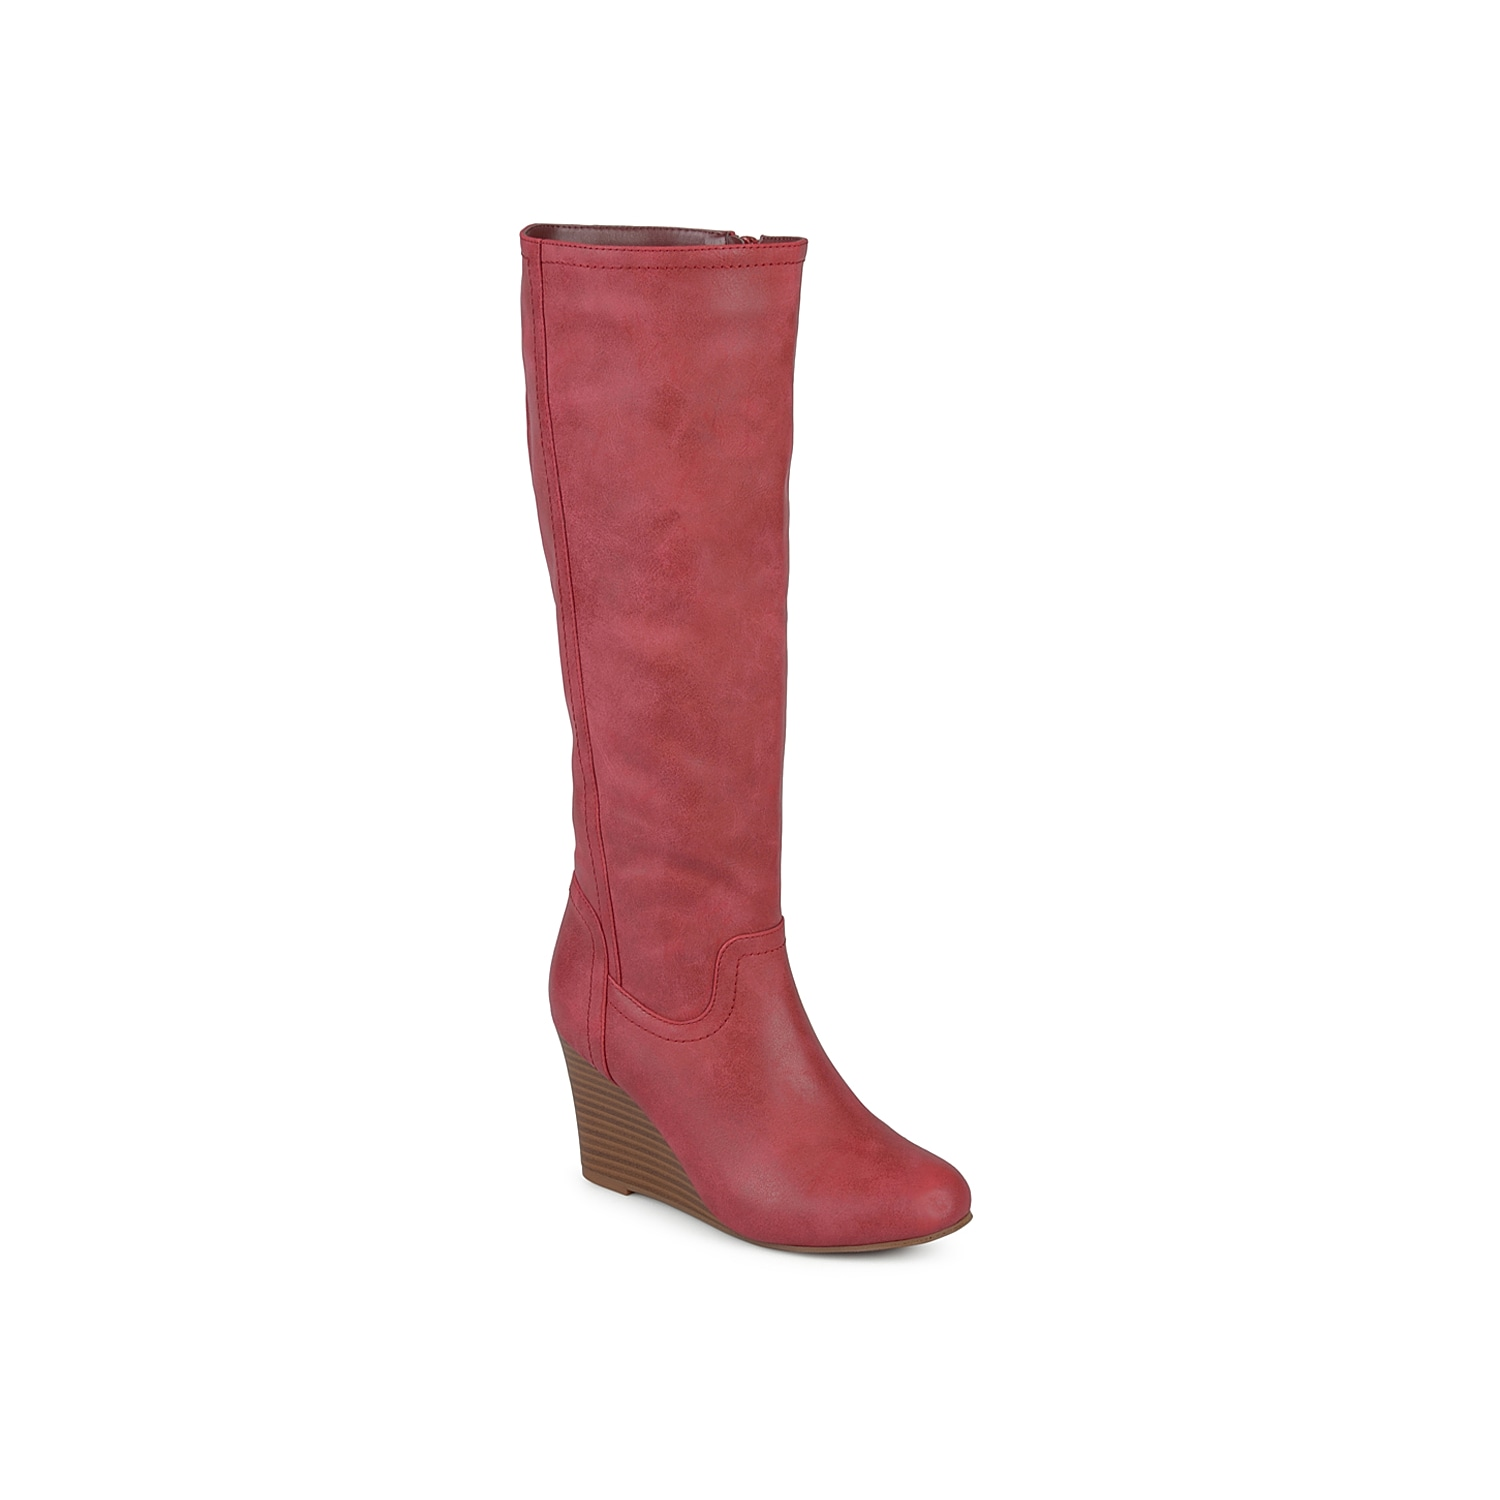 Zip up and show off these wedge boots from Journee Collection. The Langly tall boot is sure to give your look a lift with its simple yet sophisticated silhouette.Click here for Boot Measuring Guide.